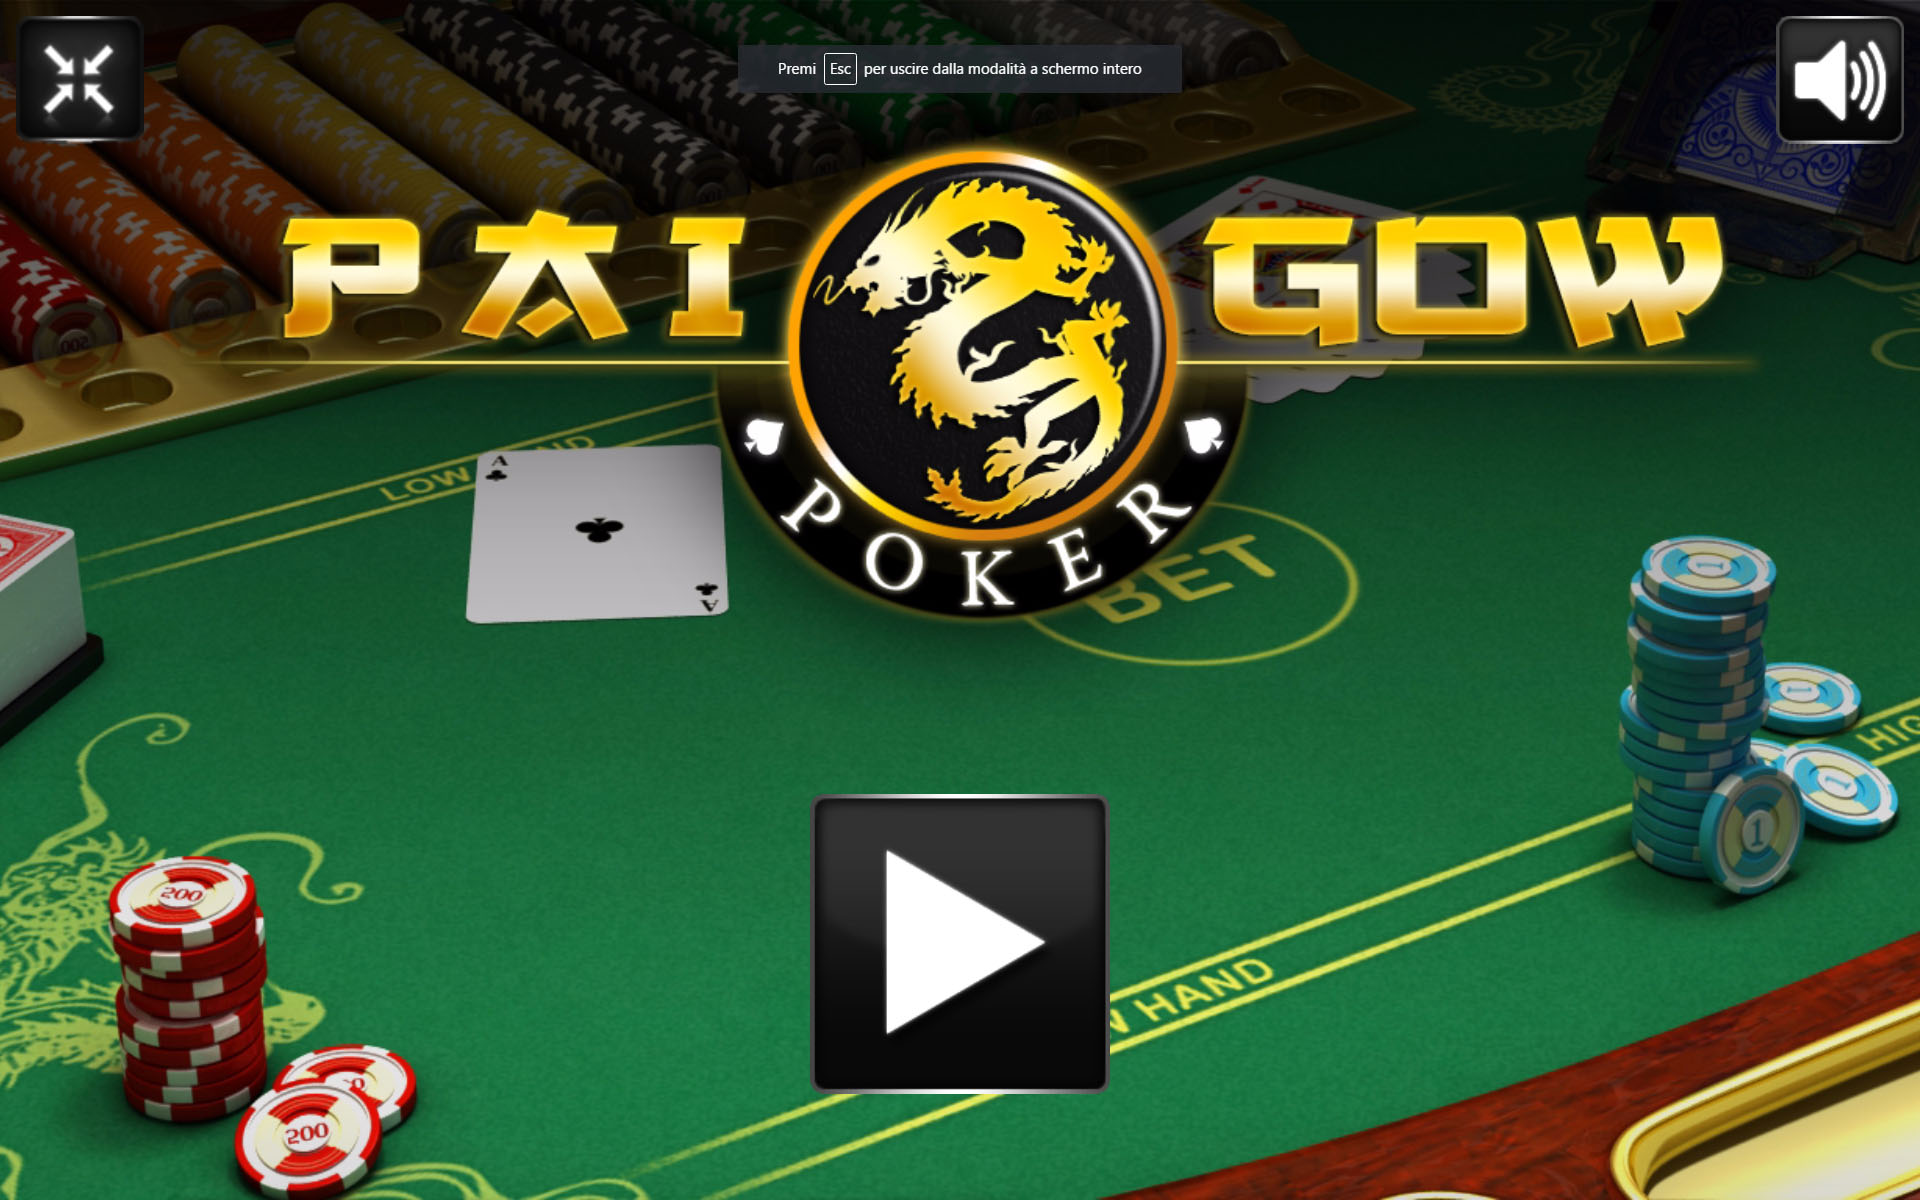 How To Play Poker Pai Gow Poker Casino Game Free With Bonus Chips